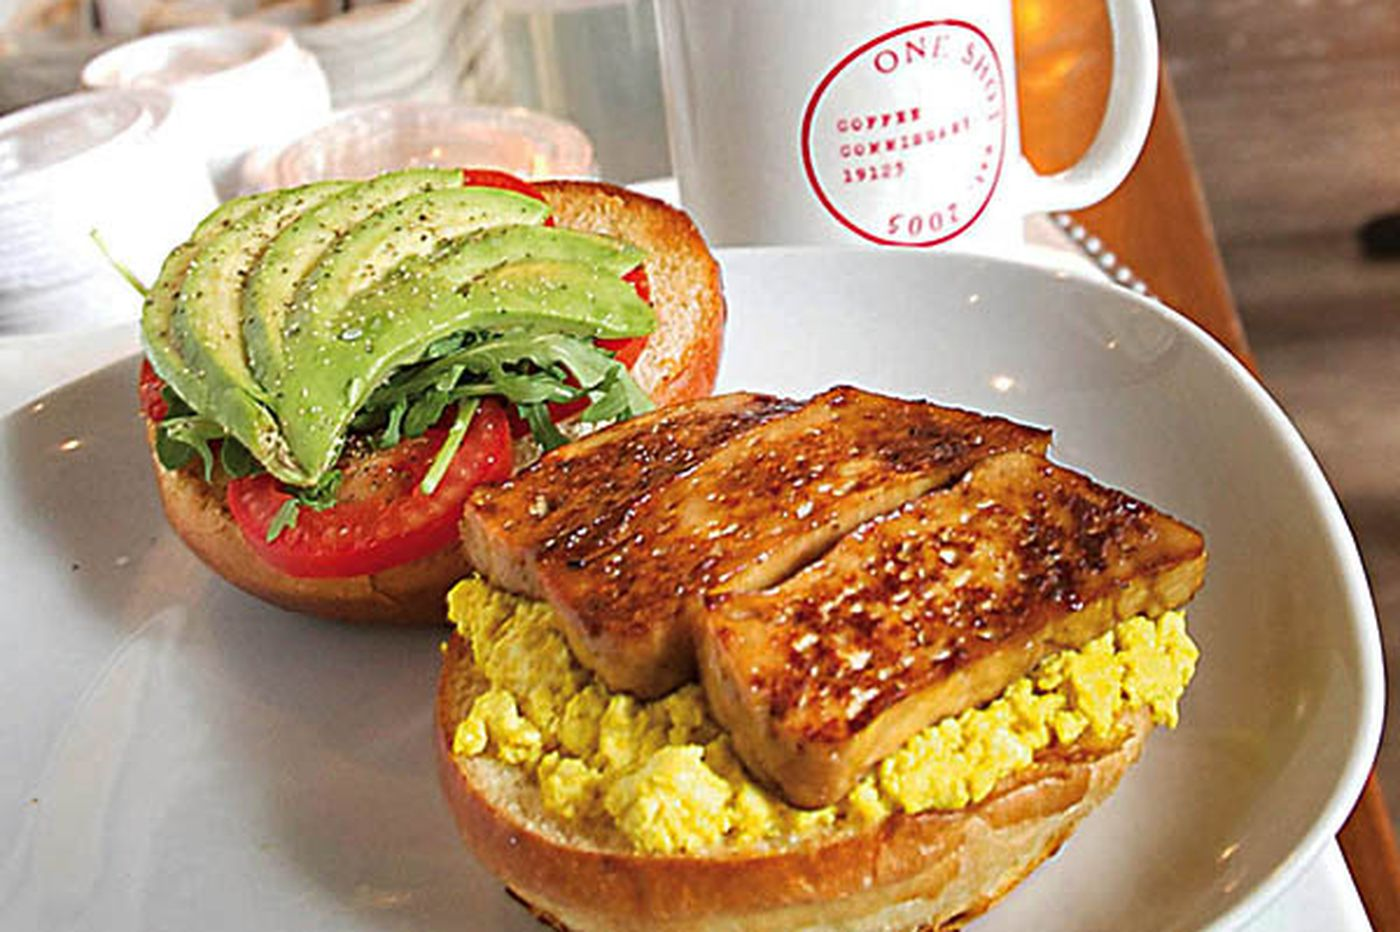 Vegan breakfast options in Philly can be a real eye-opener